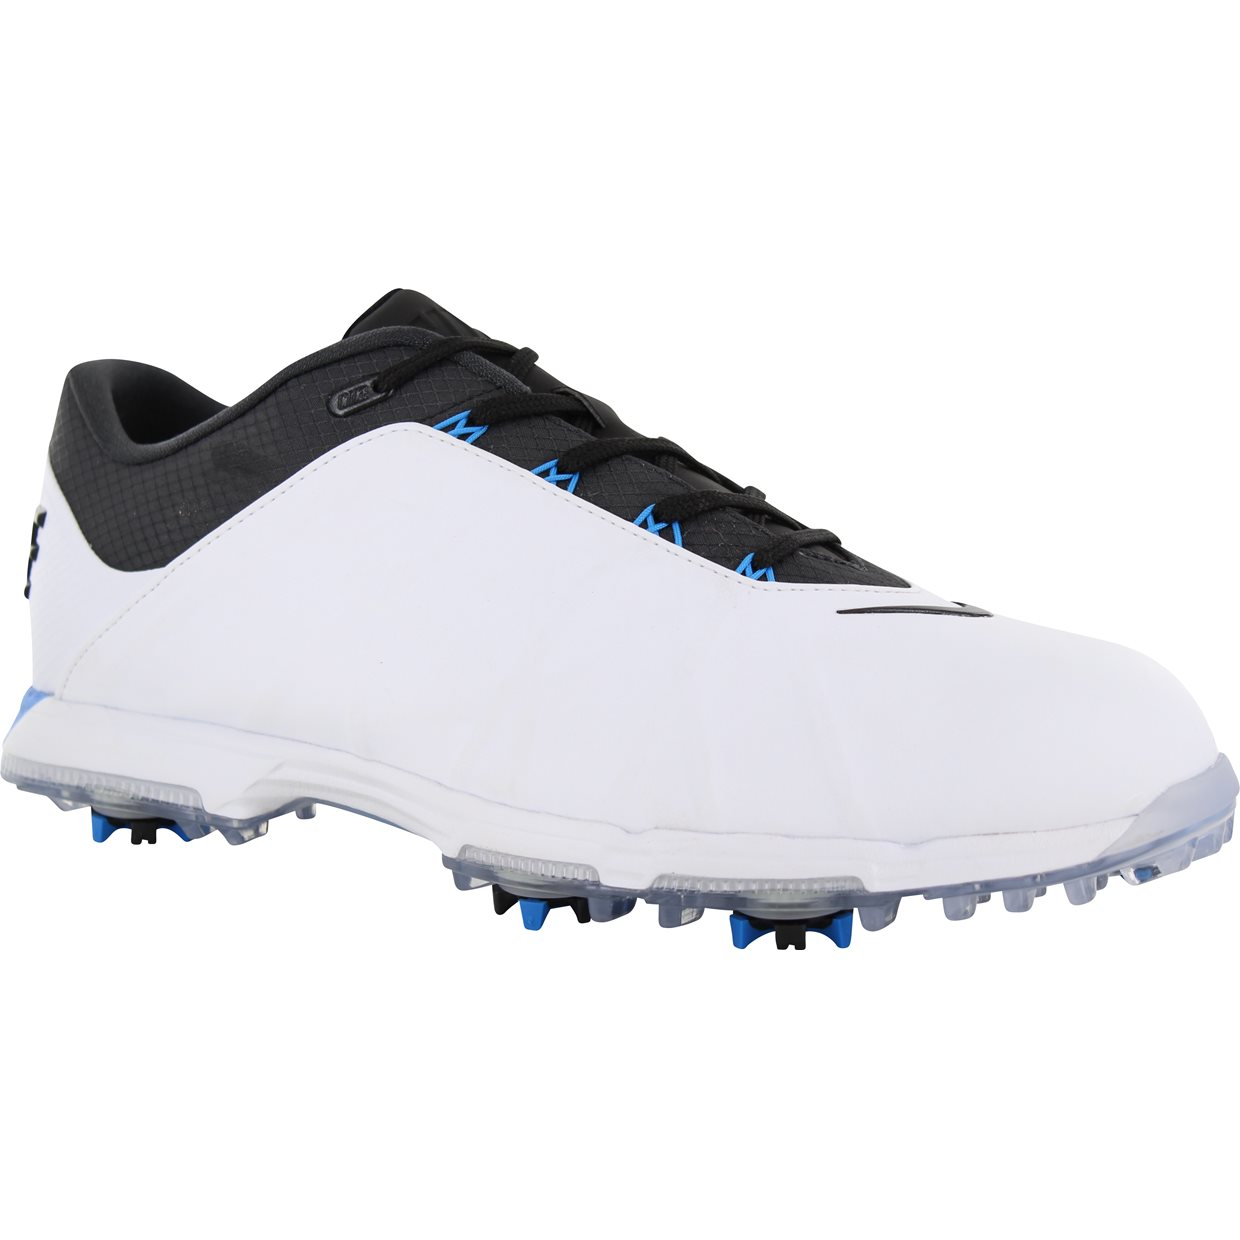 Price Of Callaway Golf Shoes